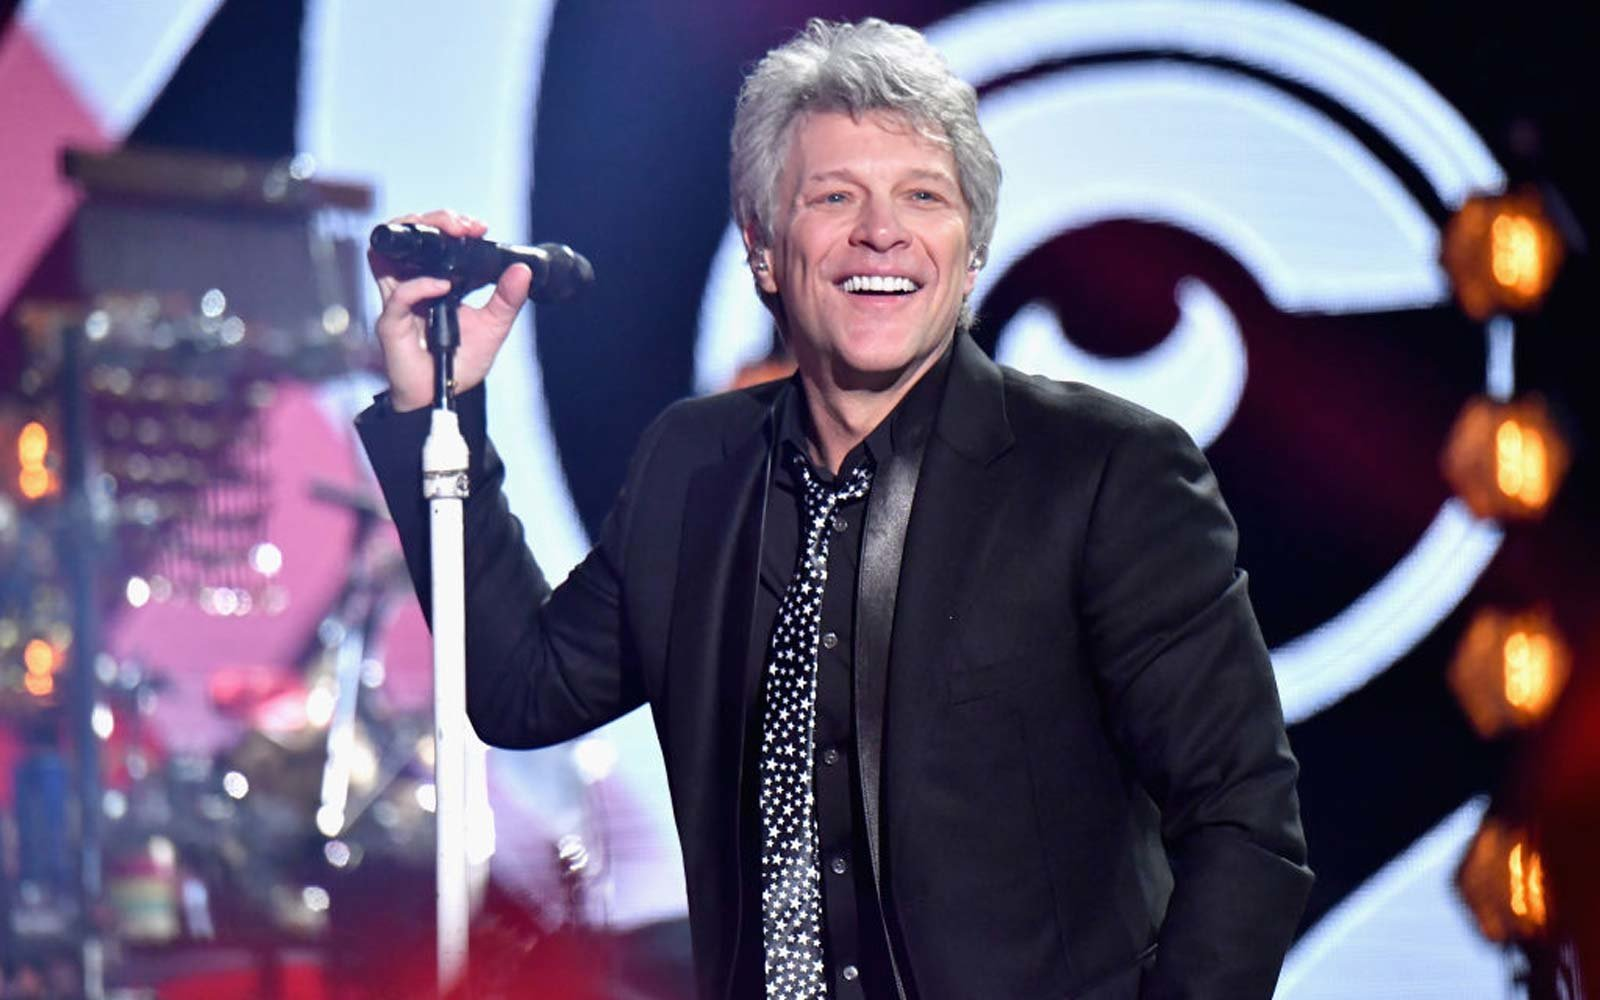 All About the Jon Bon Jovi Cruise Where You Can Eat, Drink and Sing With the Rock Star